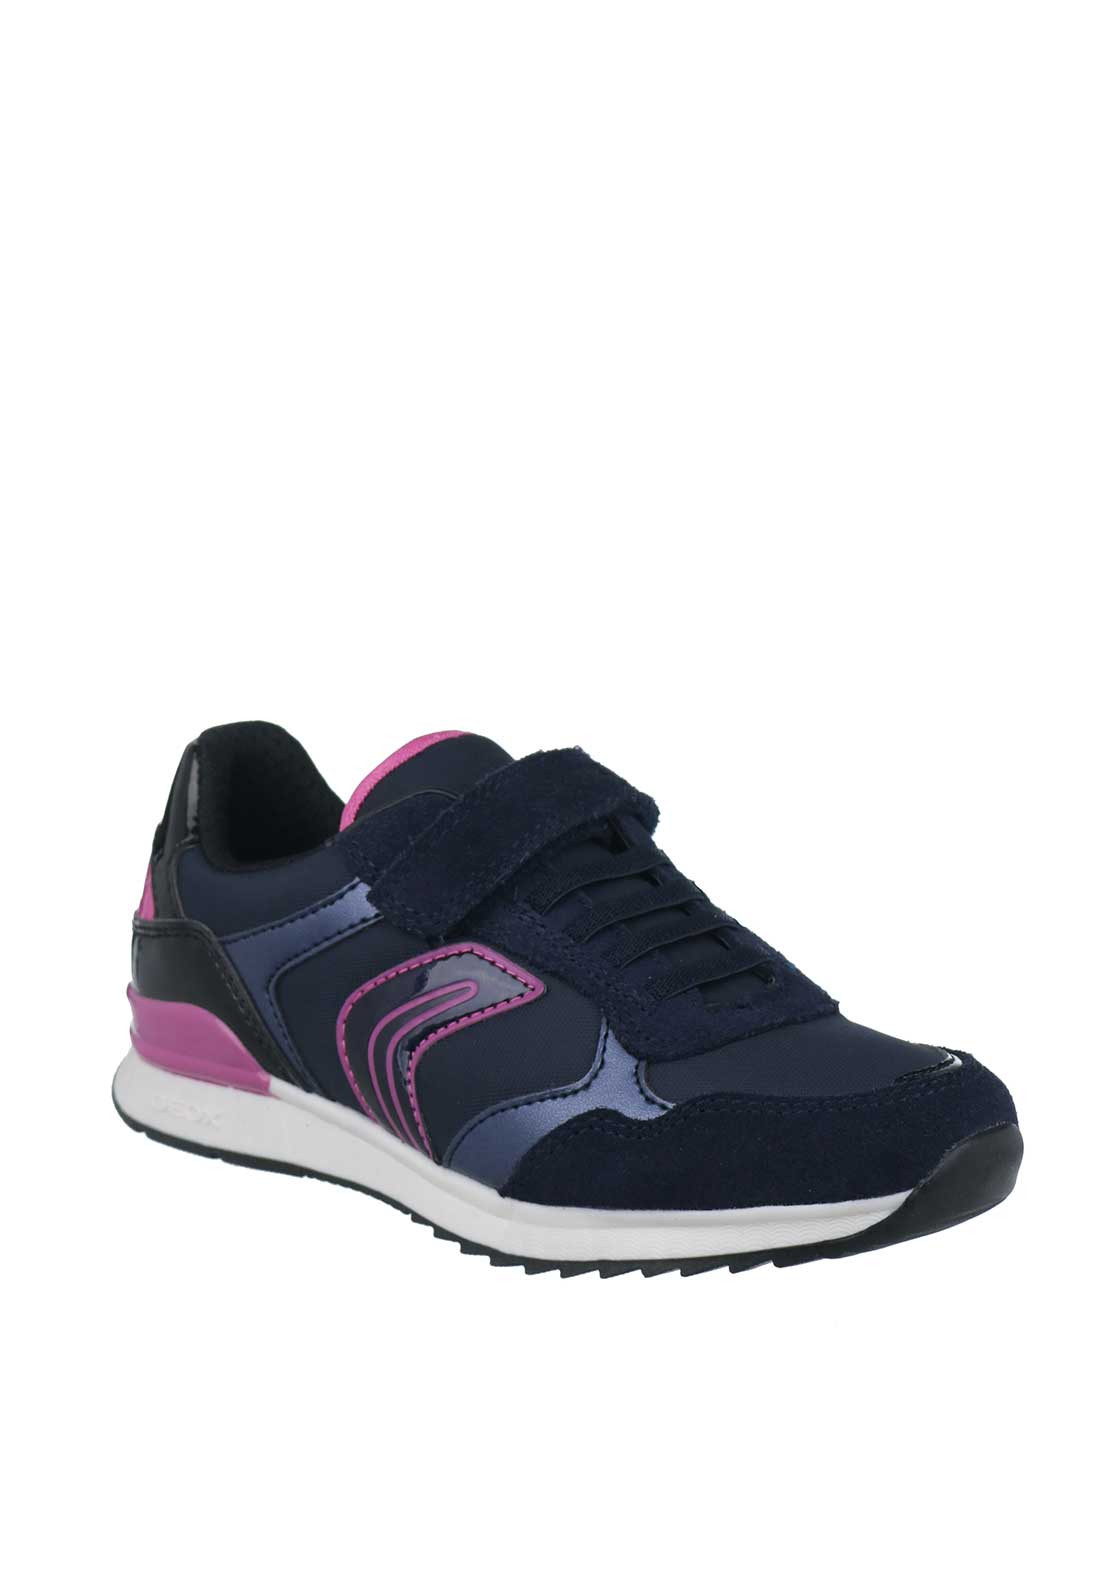 Geox Girls Velcro Strap Trainers, Navy